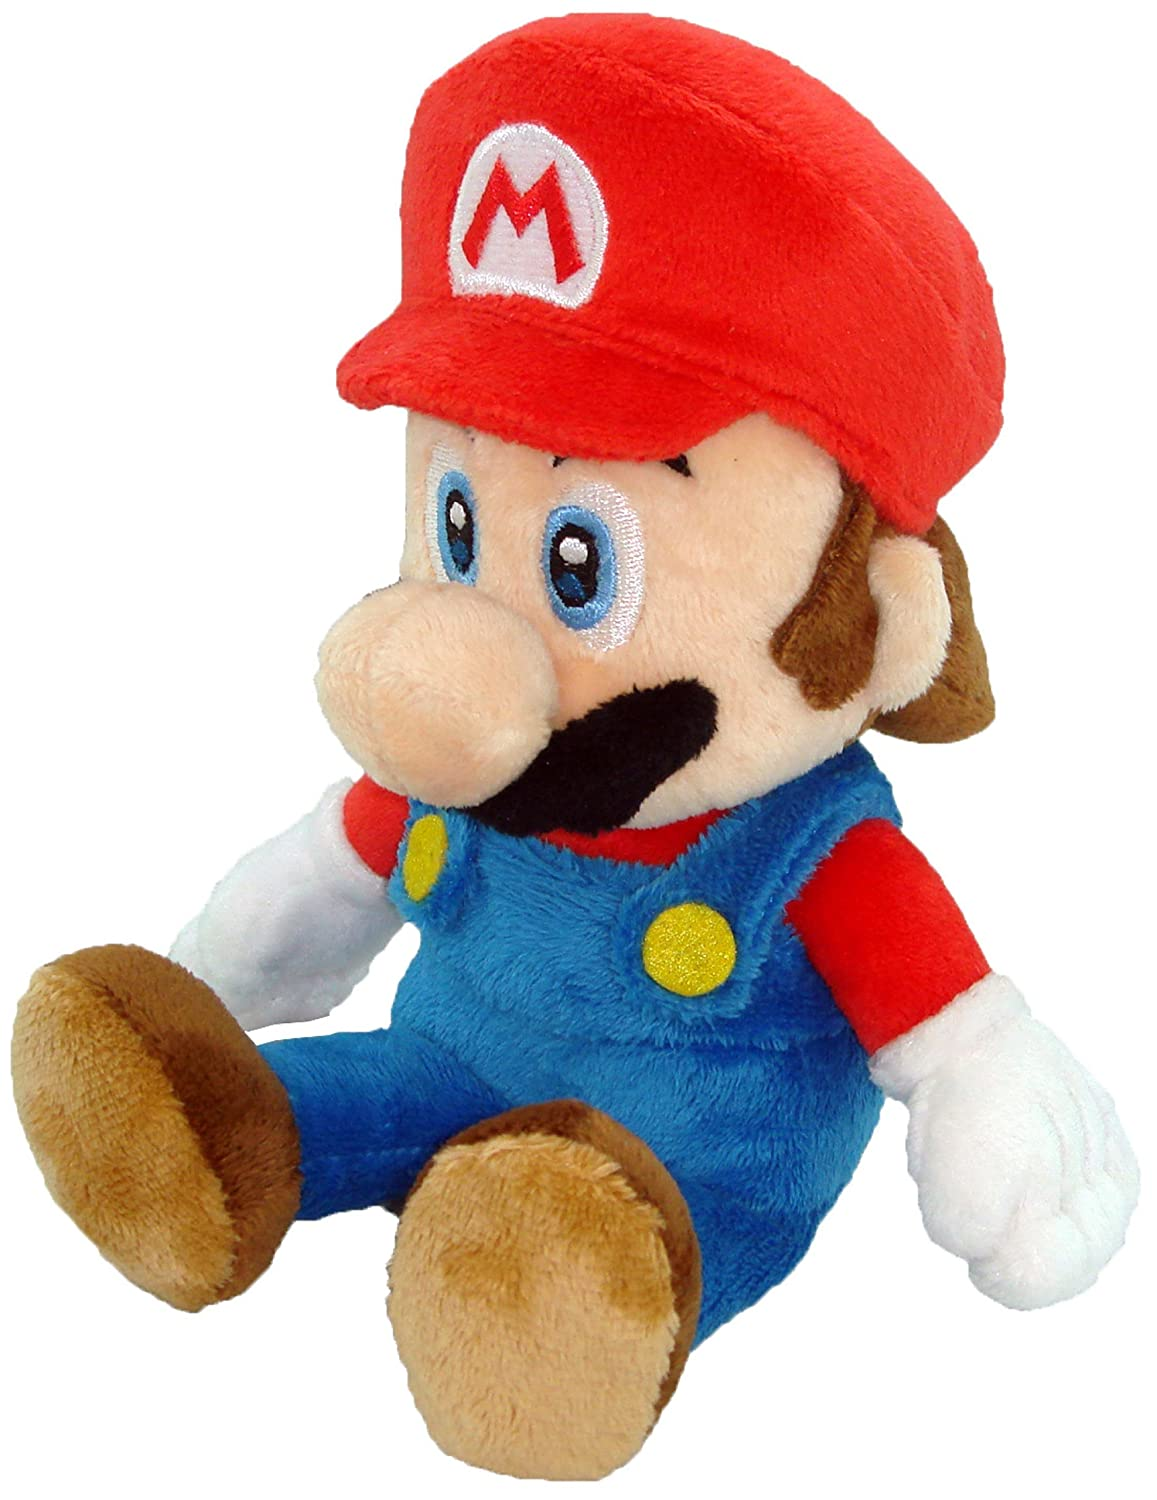 Plush Stuffed Animal Toys : A grand list of all mario plush toys from nintendo